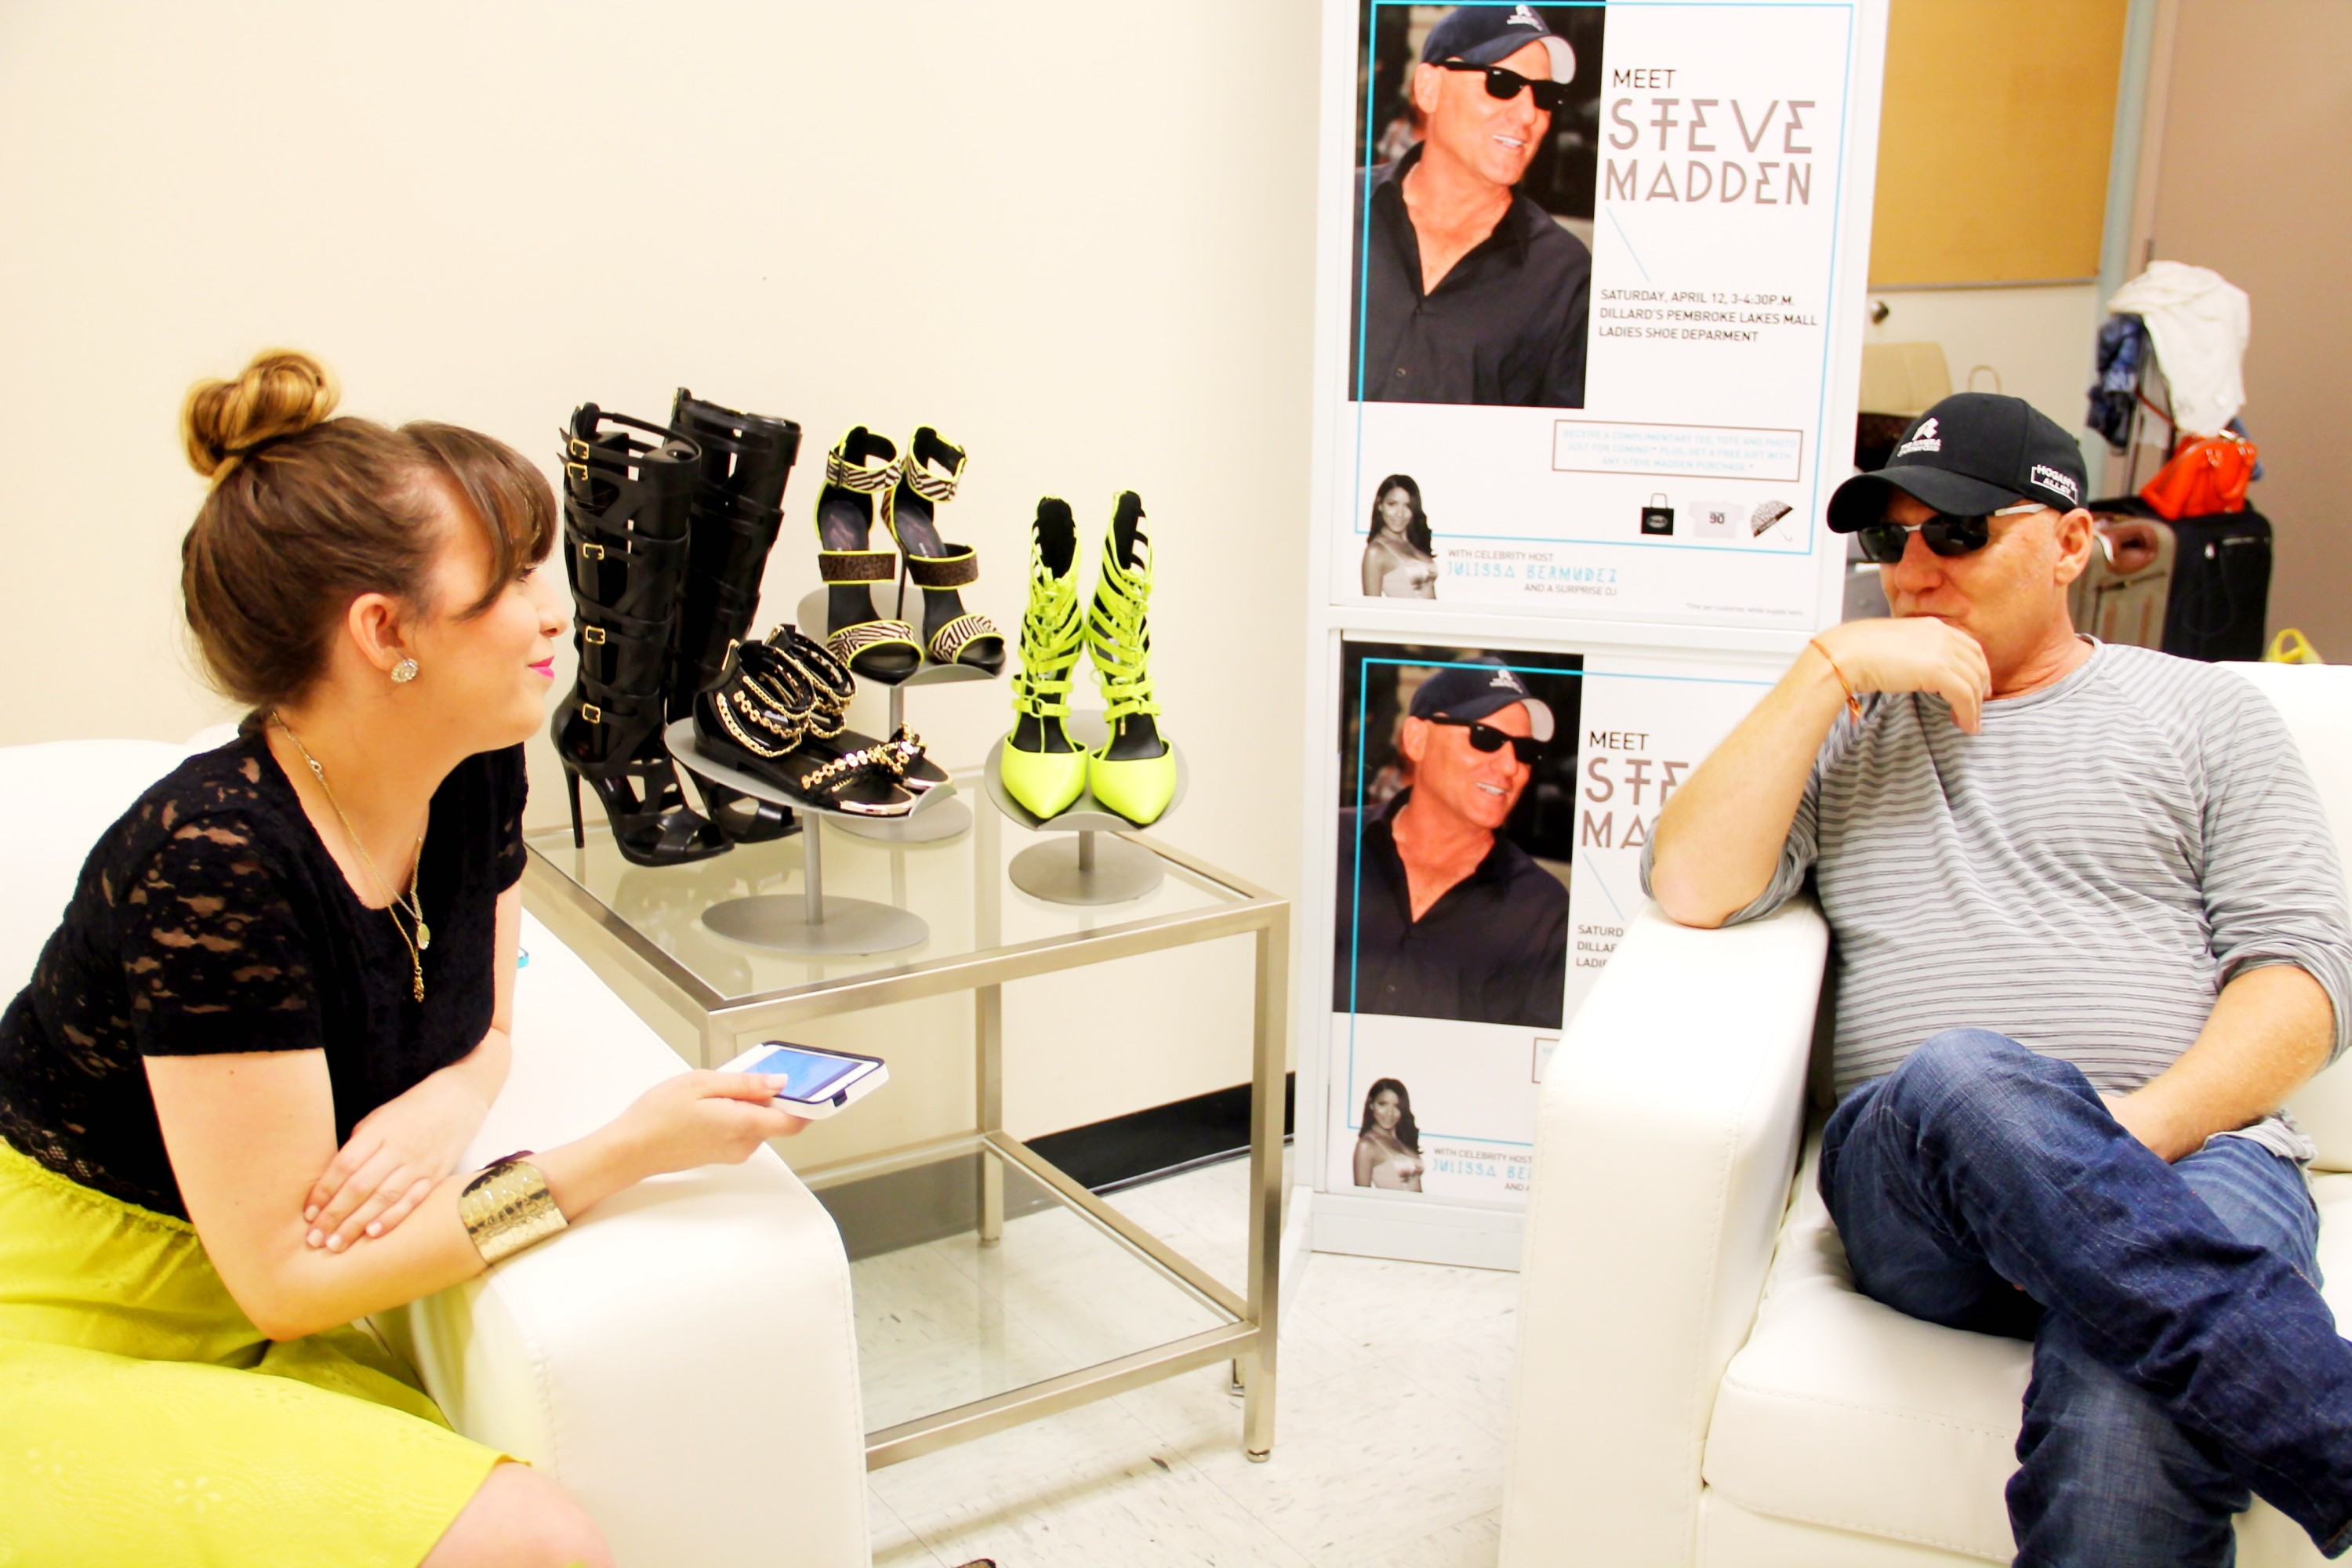 A Sparkle Factor Steve Madden Interview